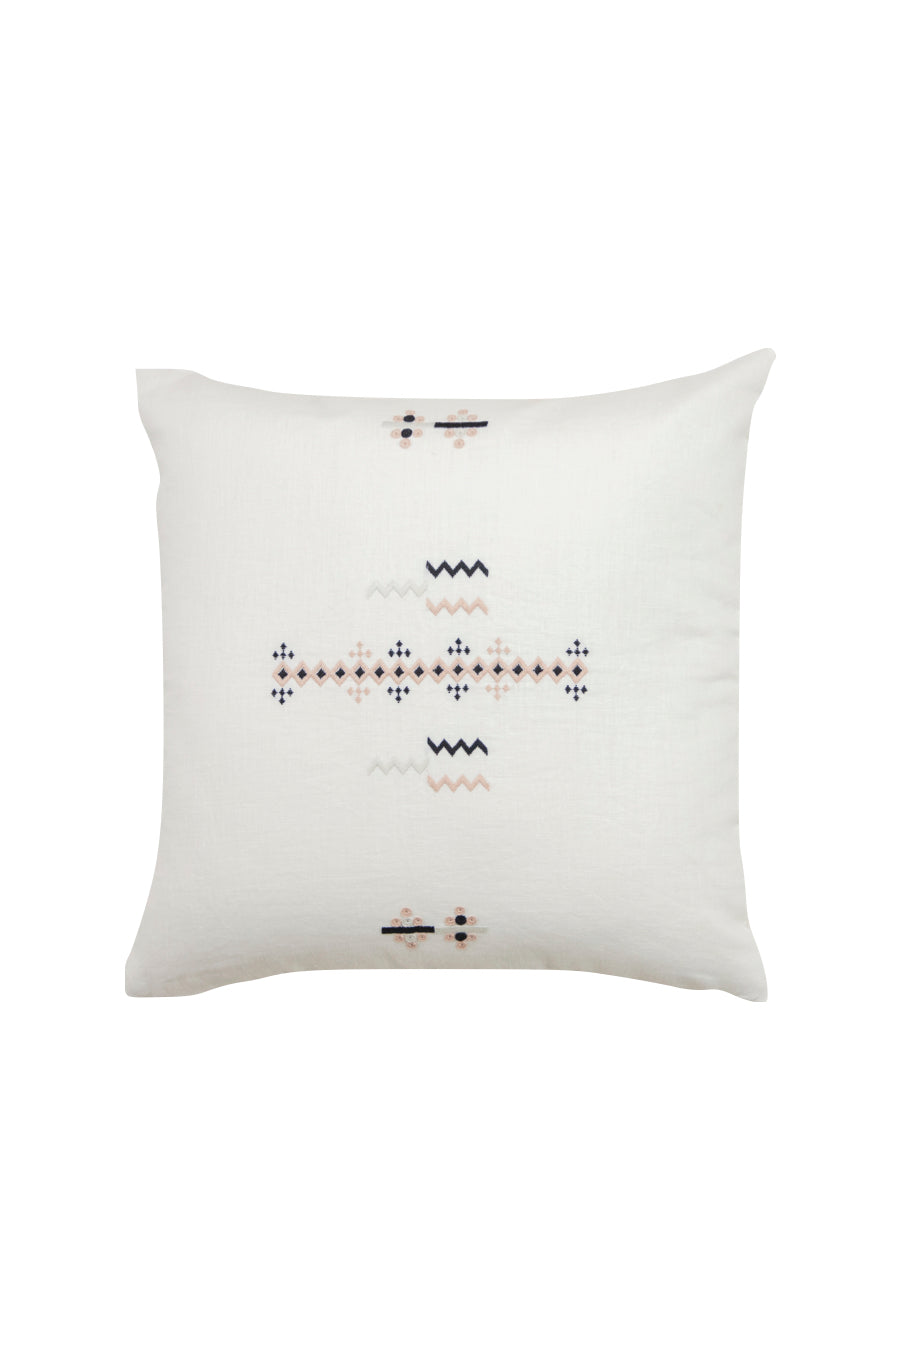 Aid to Artisans Saclum Pillow - Pearl